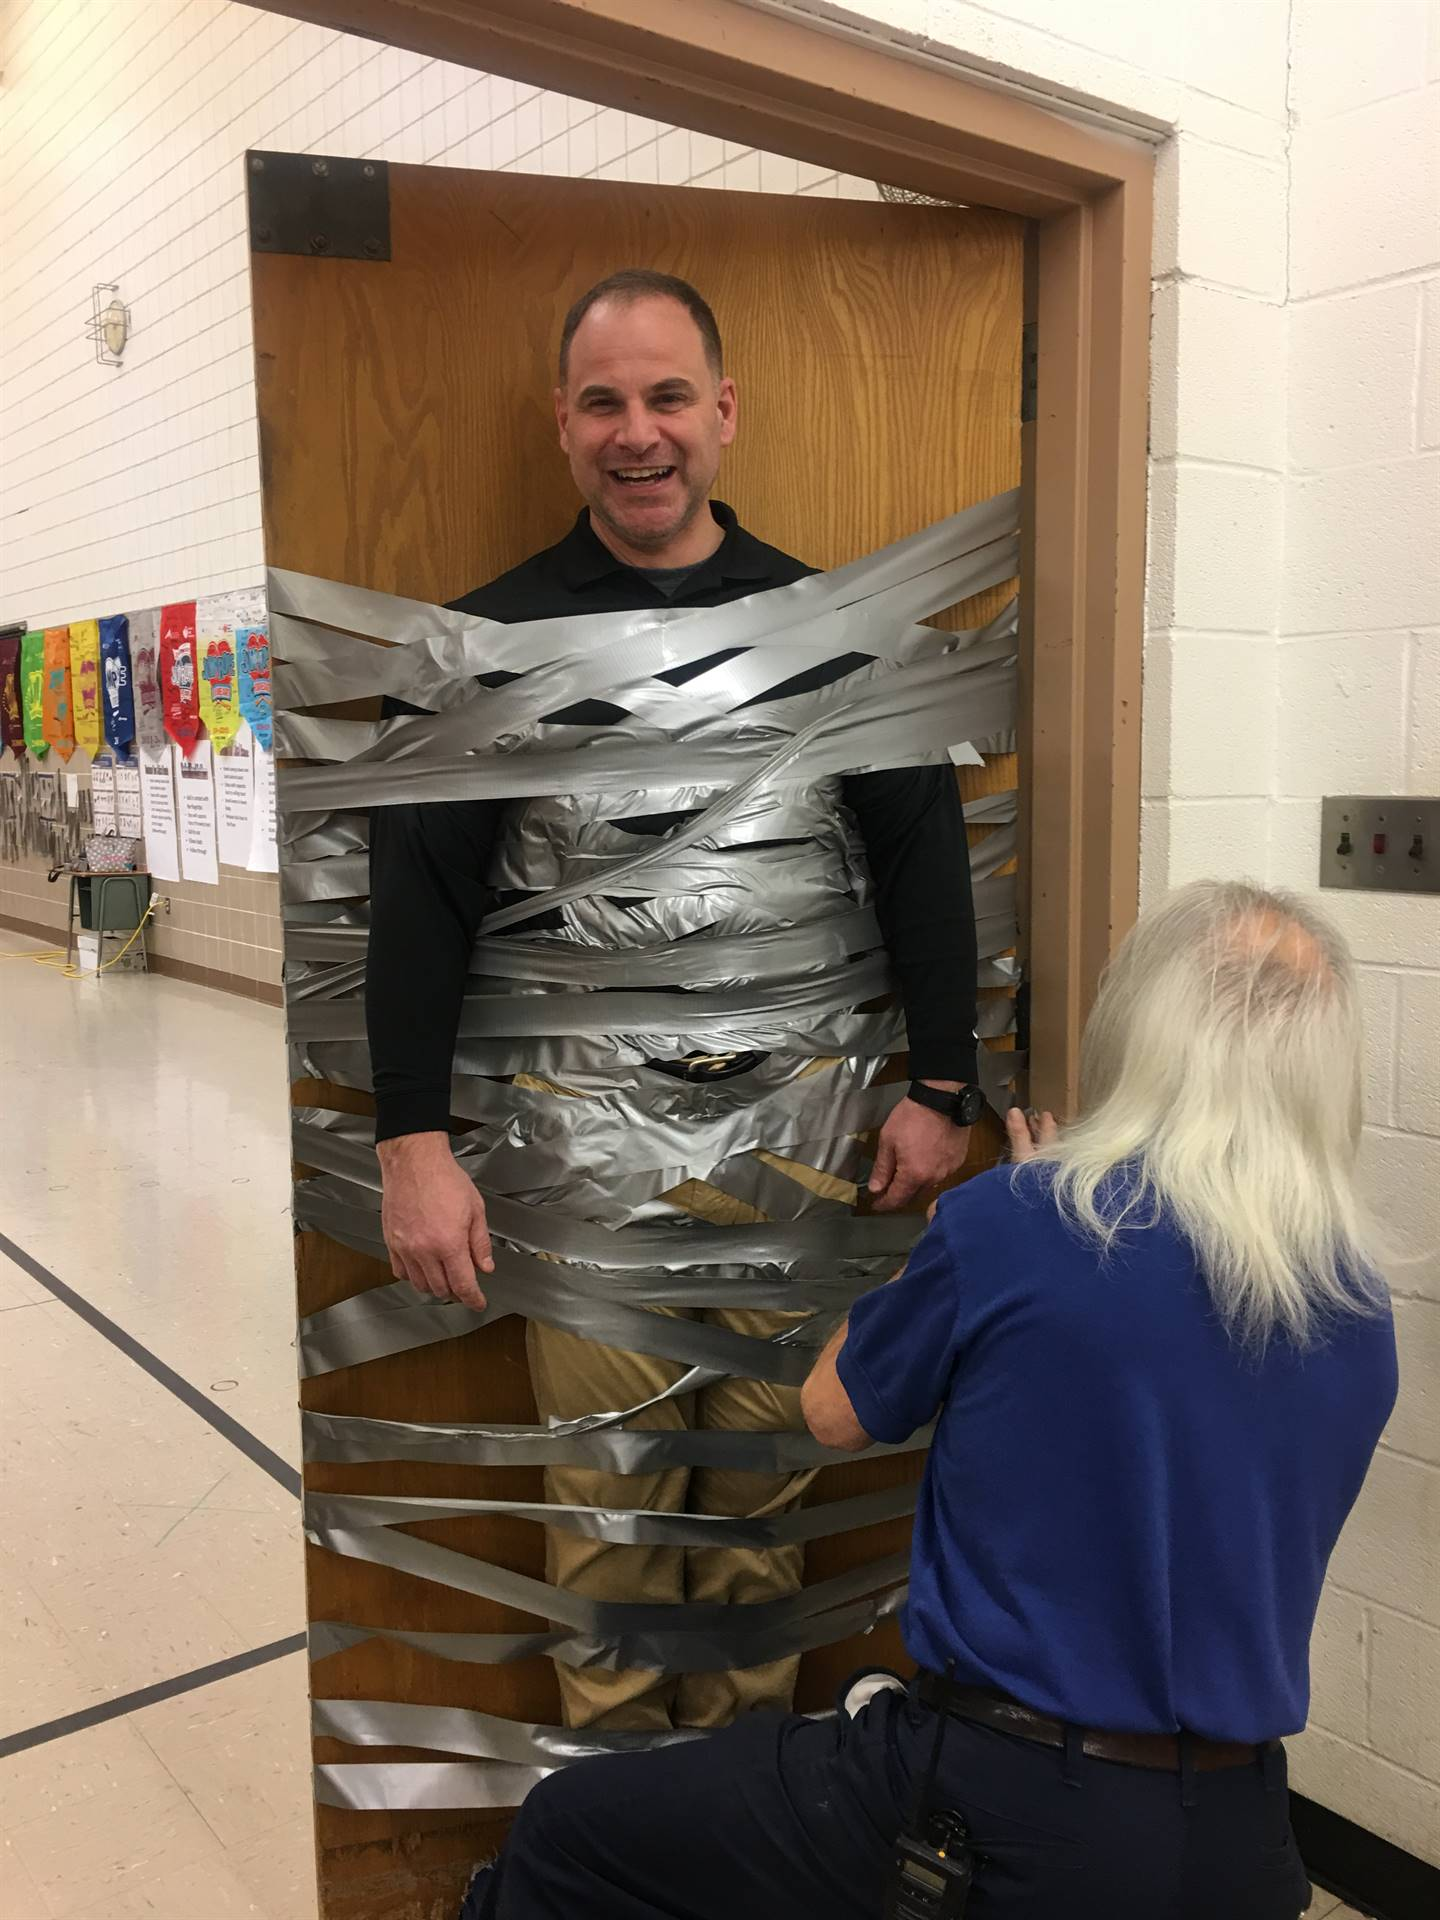 Mr. Rojik gets taped to the door as a reward during the Pennies for Patients  fundraiser